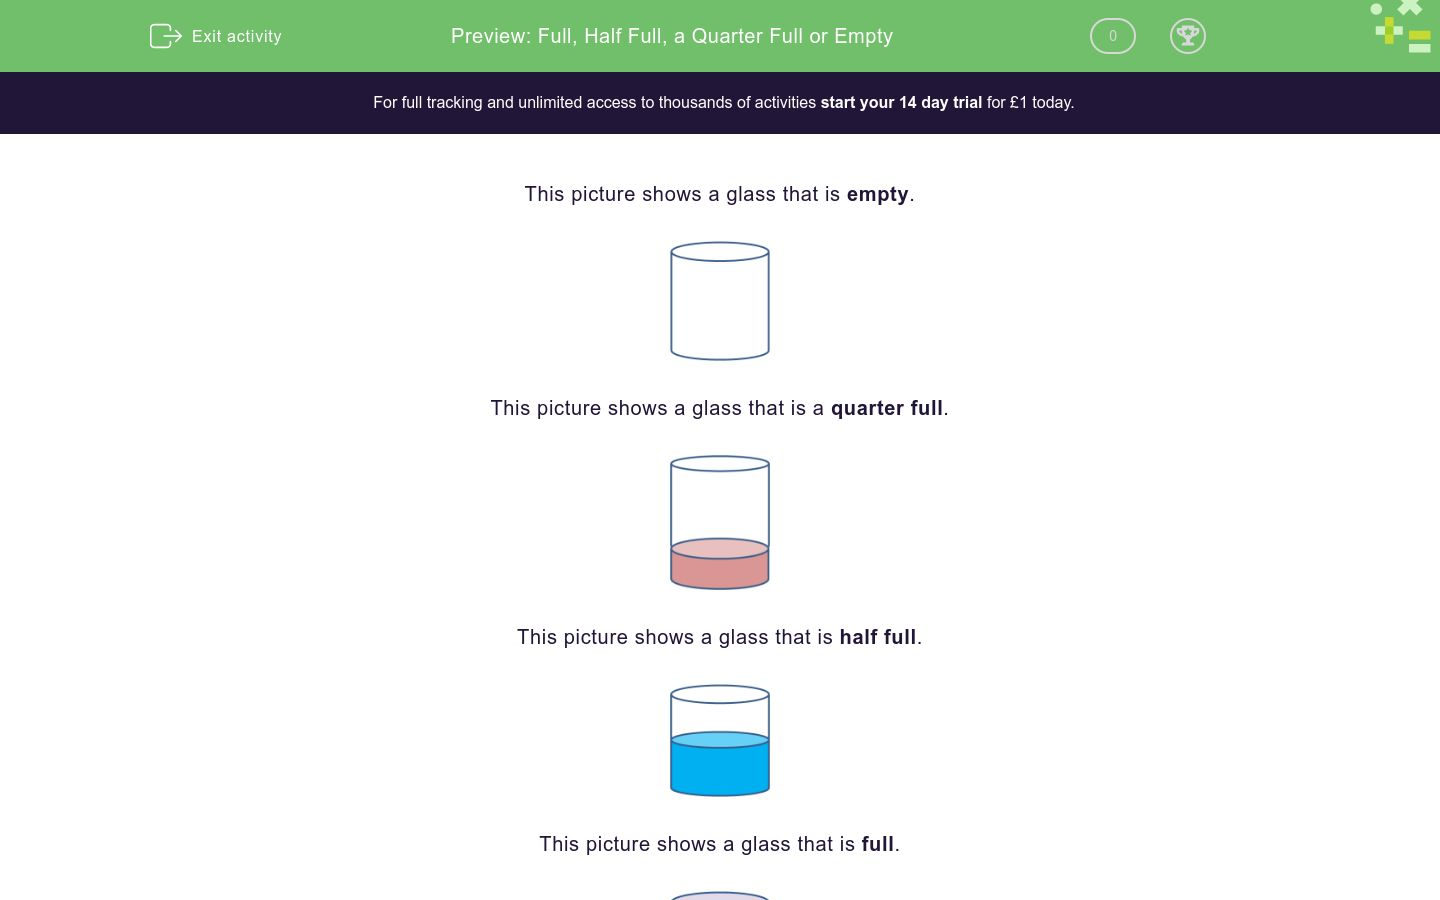 'Full, Half Full, a Quarter Full or Empty' worksheet